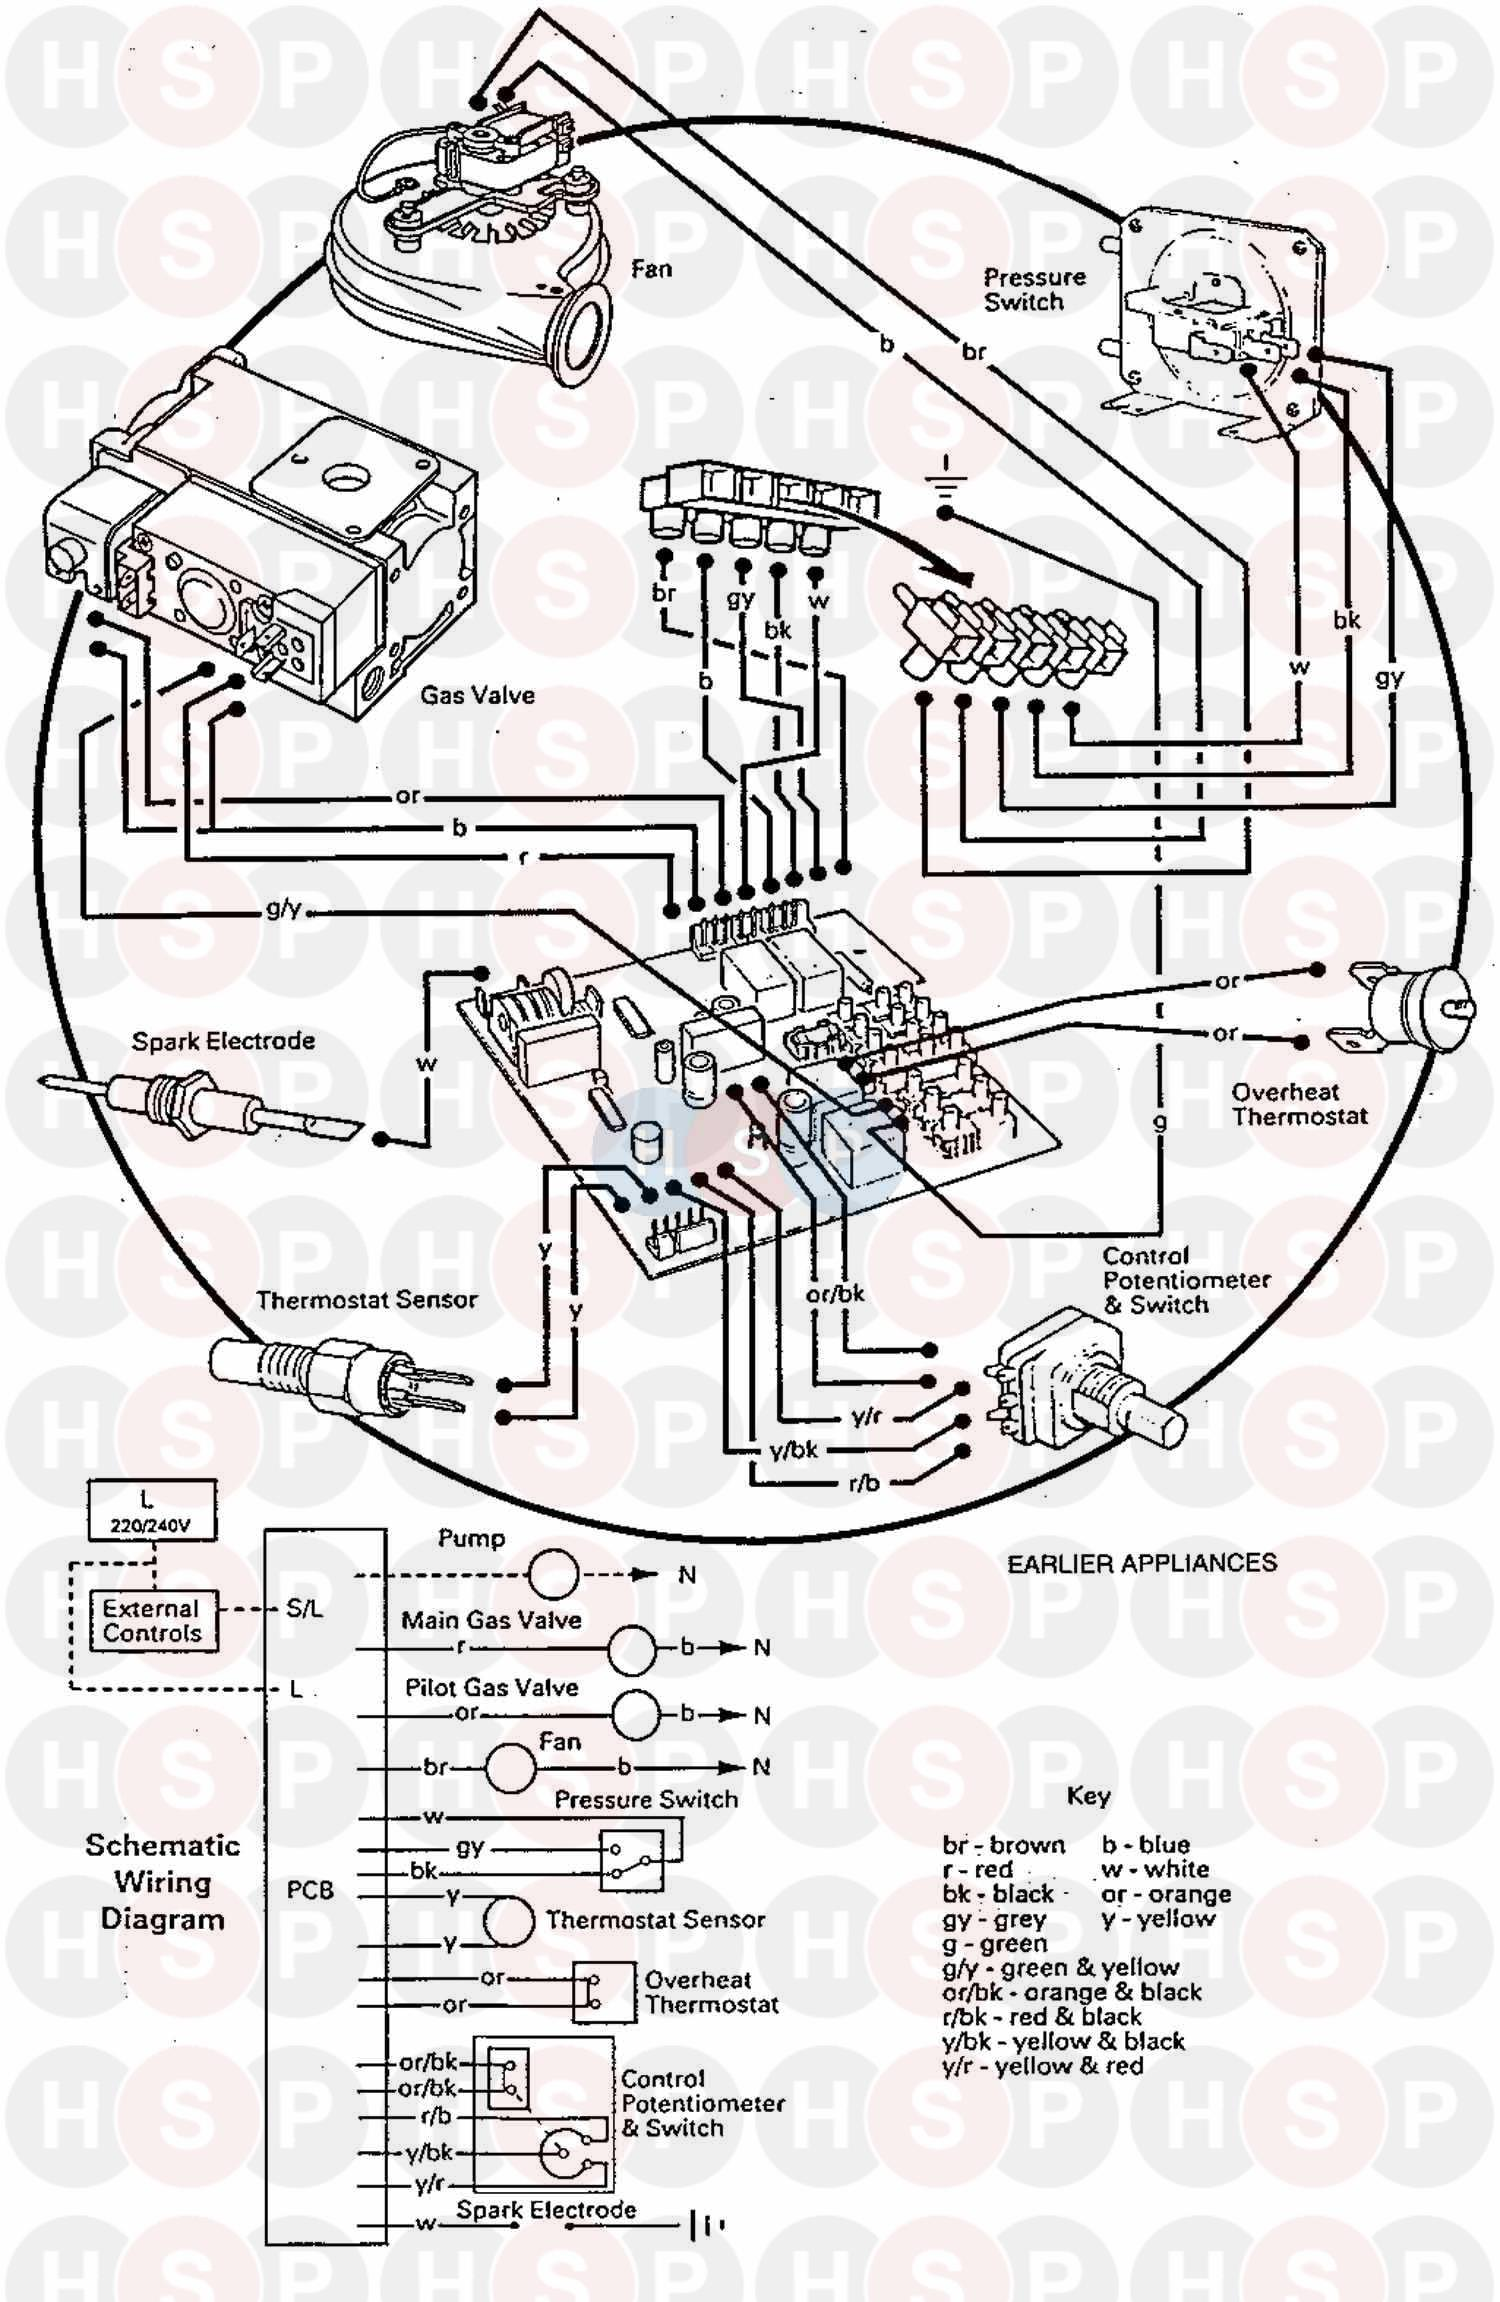 Leroy Somer Generator Parts Wiring Diagram And Engine Further Stamford Circuit Ic As Well Index Also Moreover Baxi System Boiler